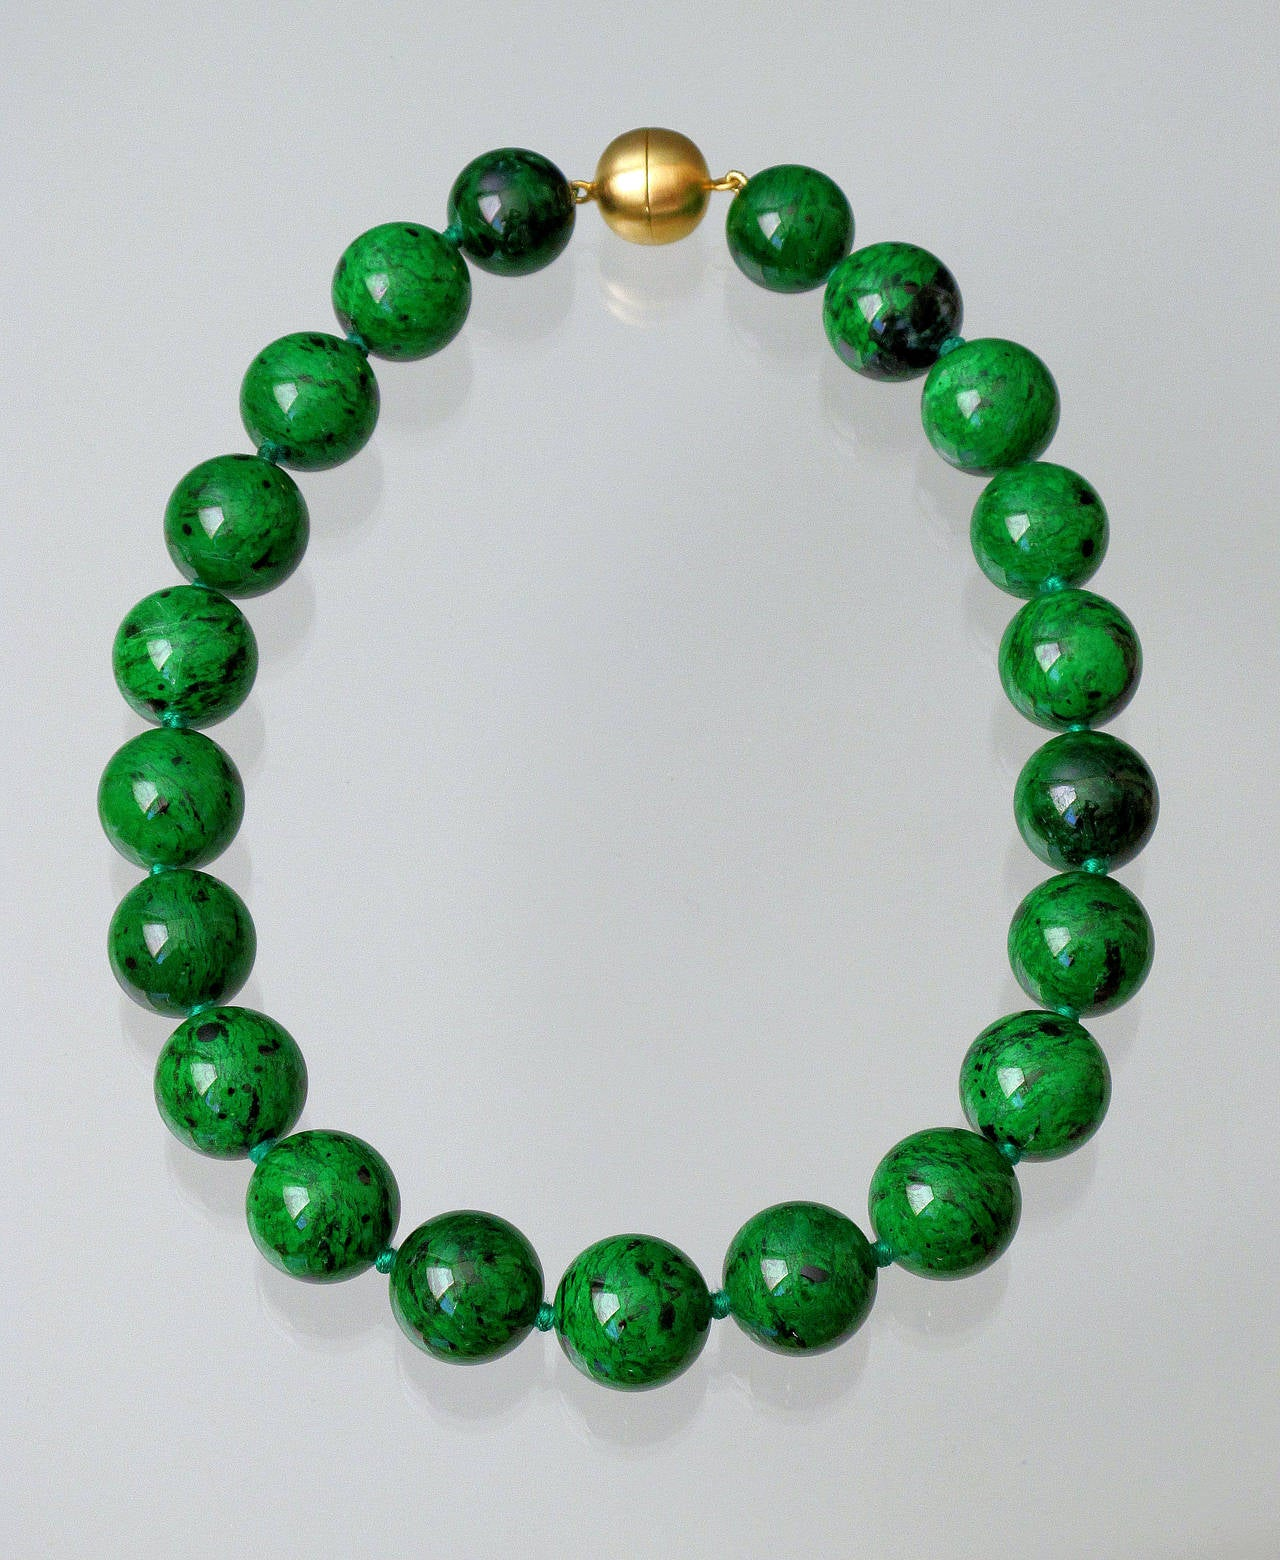 hatori fullxfull listing glowing zoom hatoris chise il jade necklace s